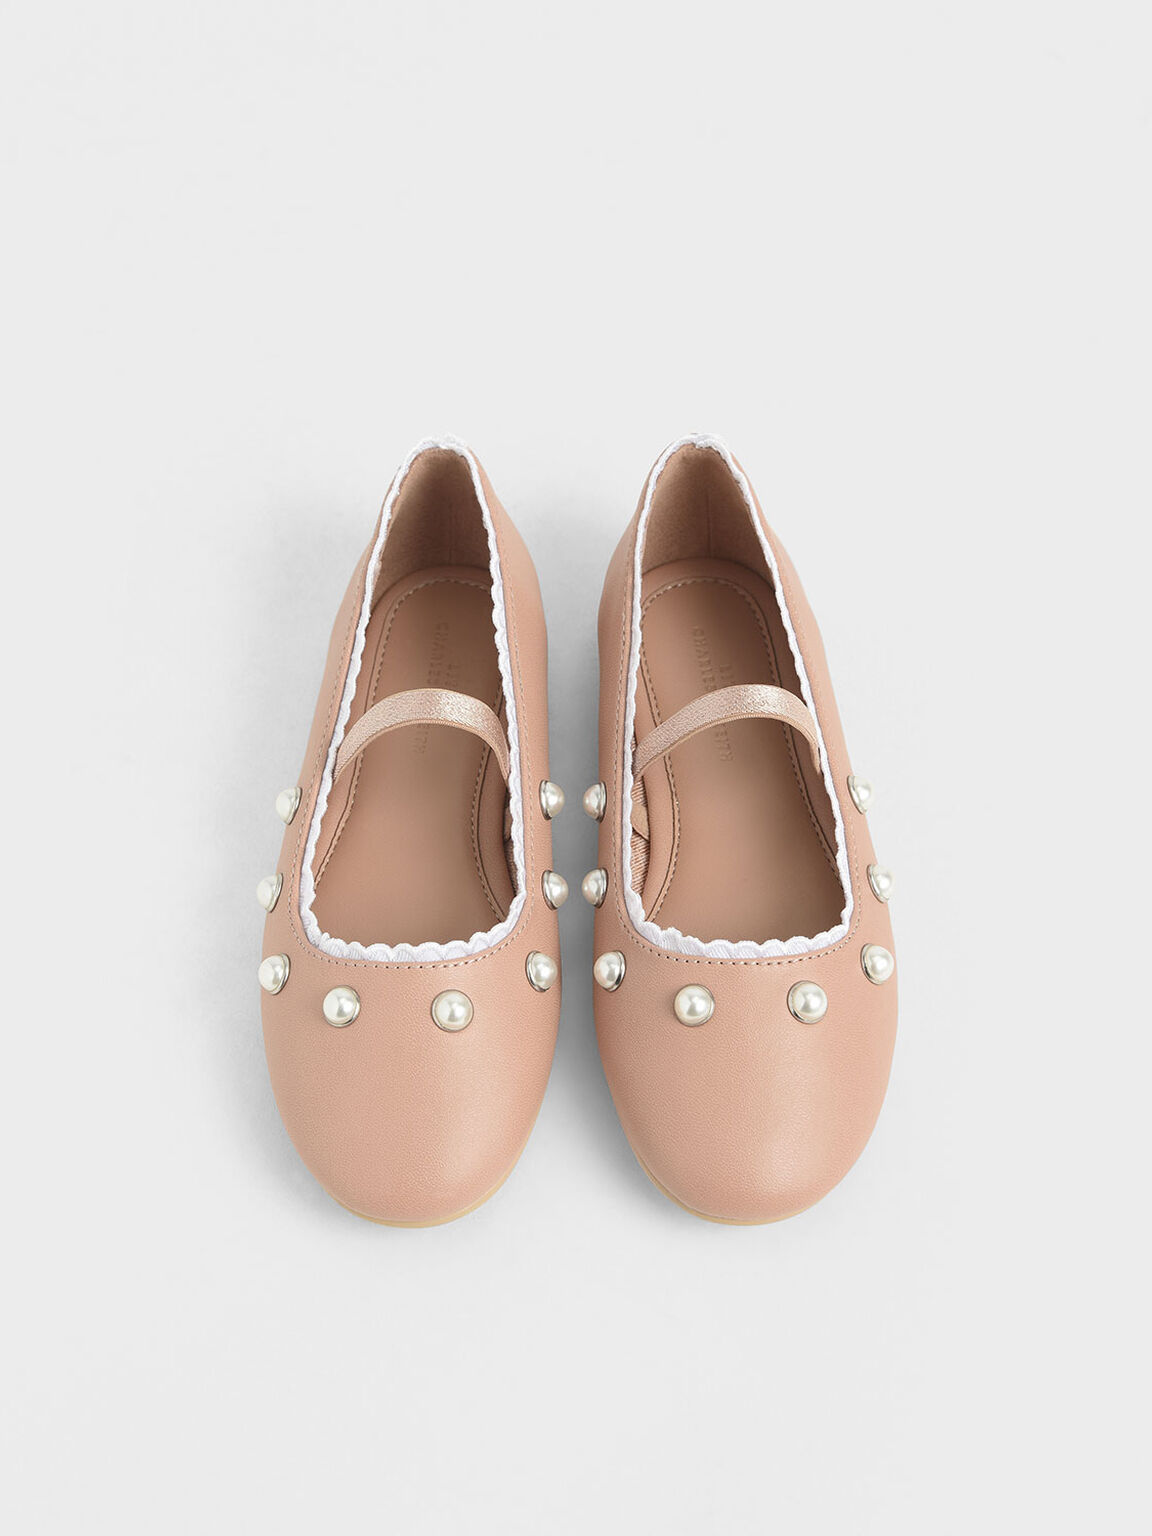 Girls' Studded Mary Jane Flats, Nude, hi-res